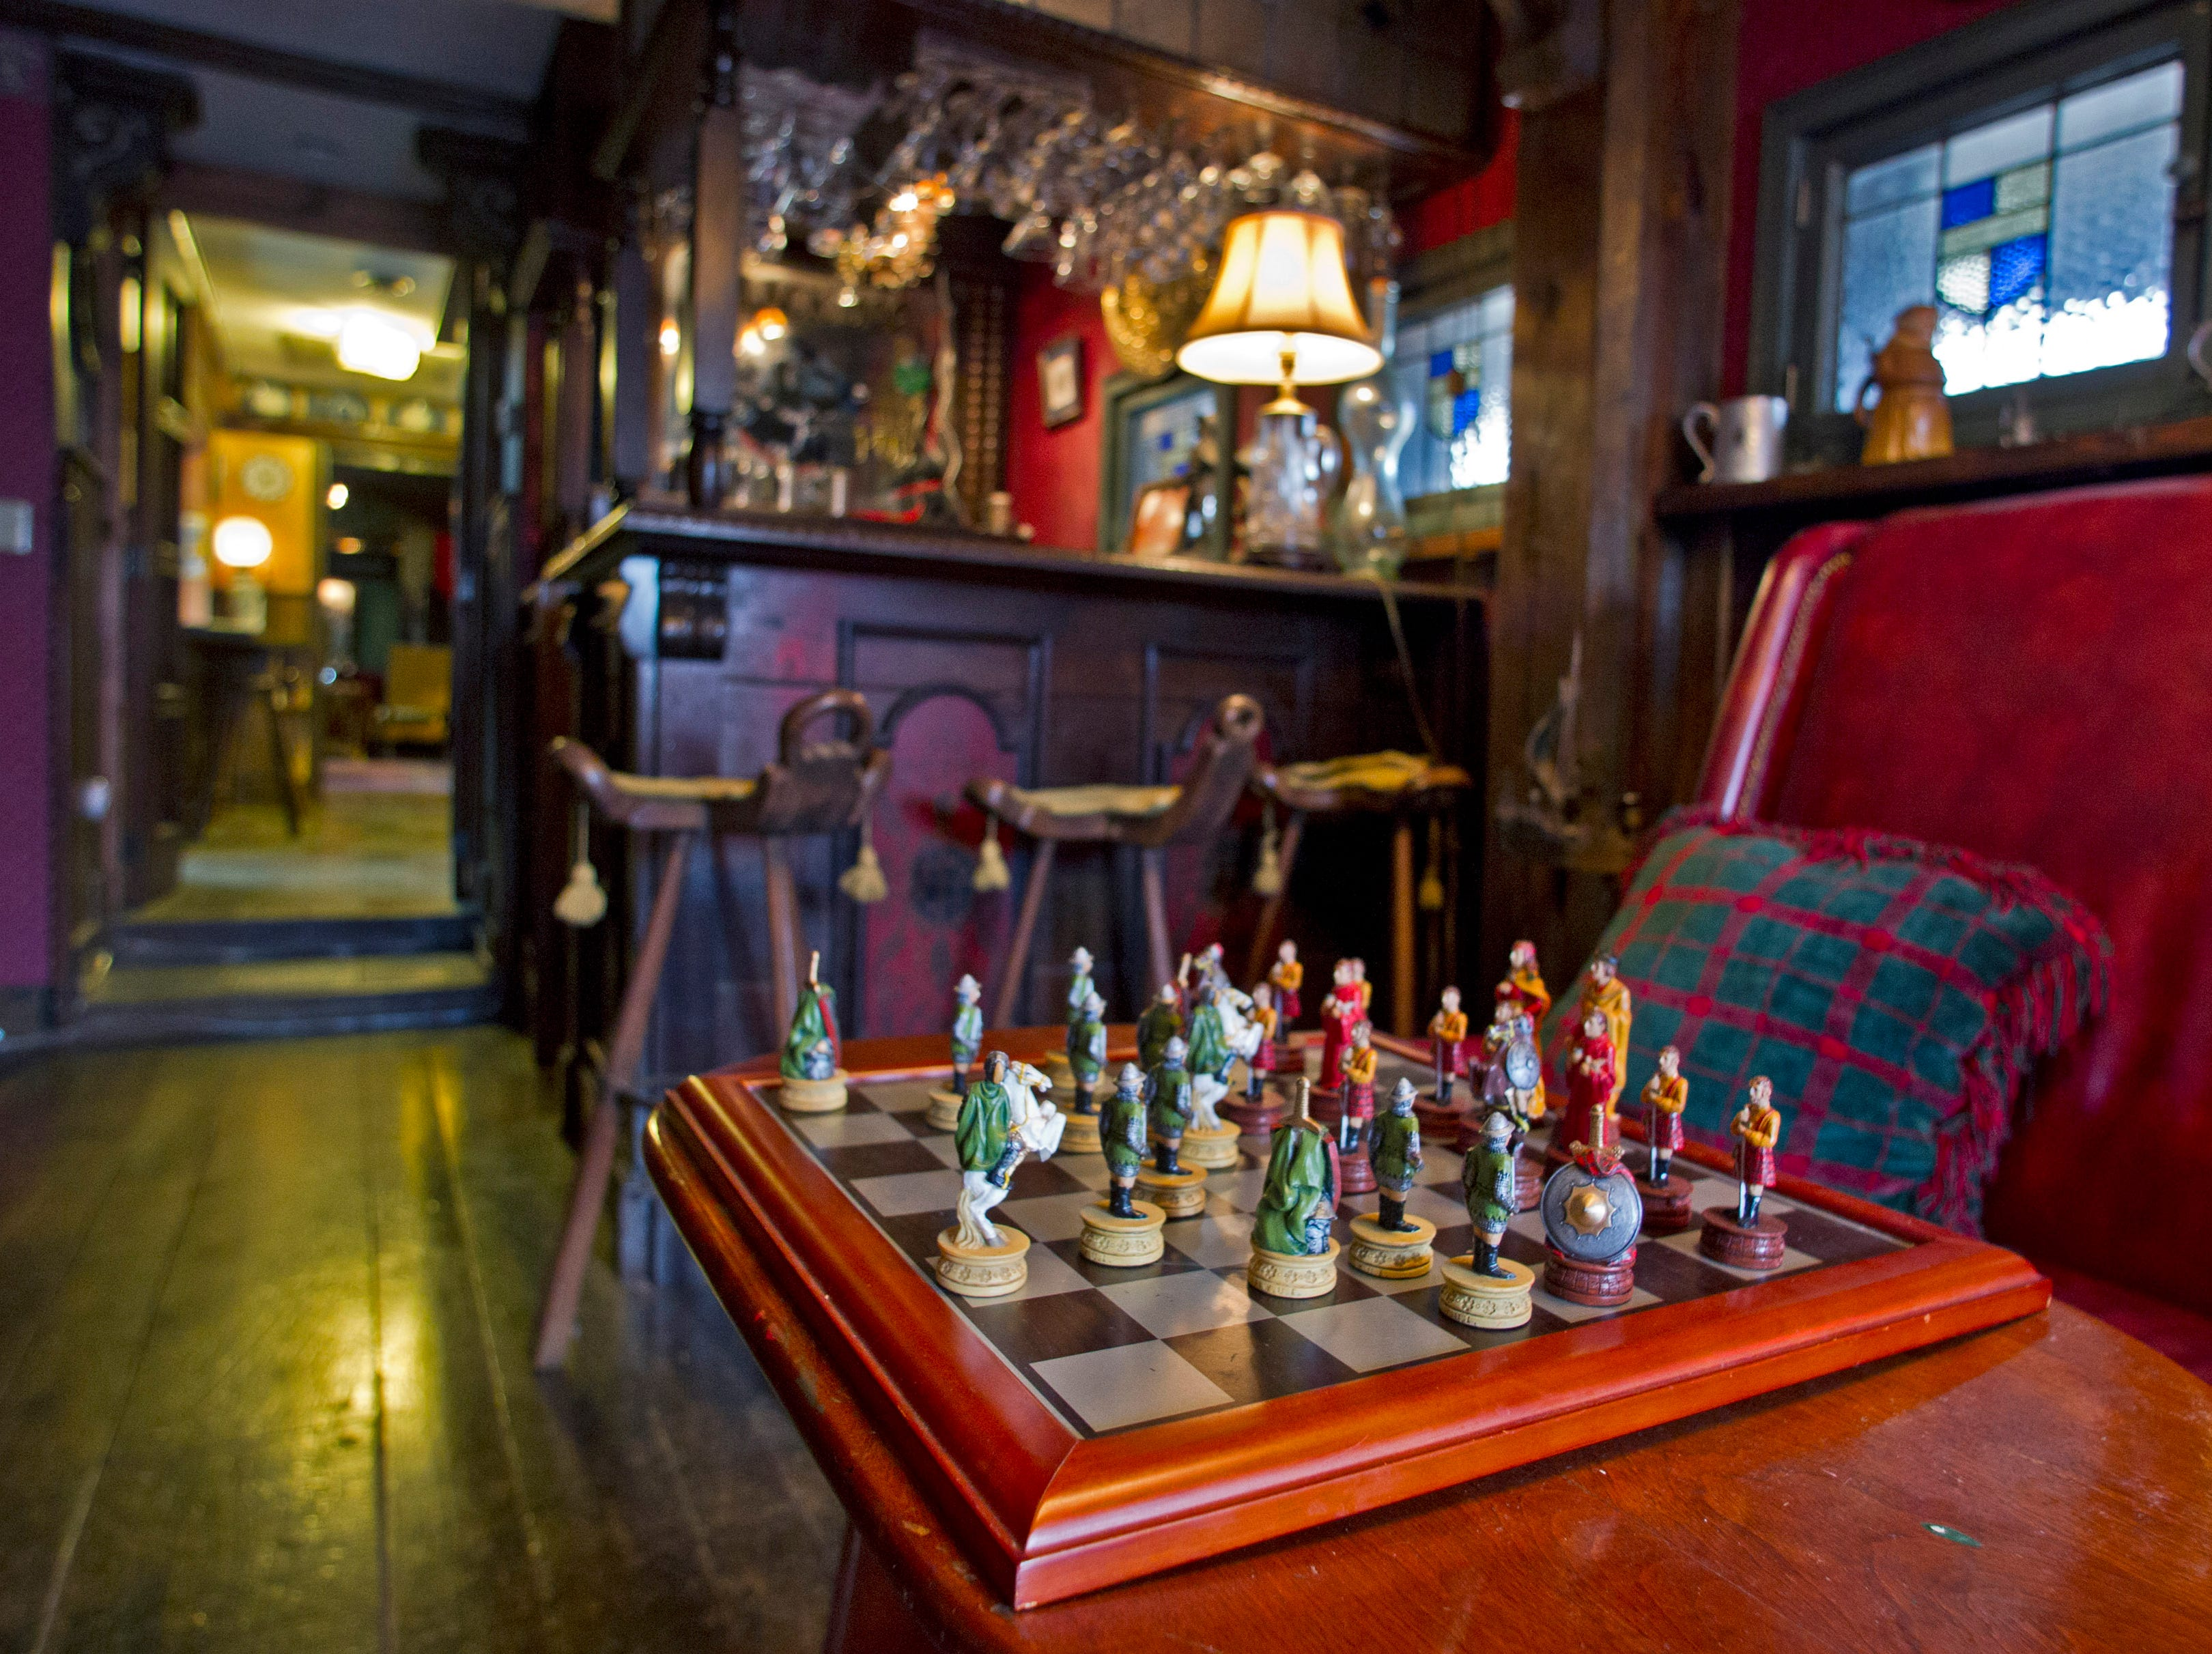 The Black Dog Pub at Williamswood is a cozy setting for a game of chess. The pub owes its name to a friendly Labrador pictured on the wall on March 15, 2015.